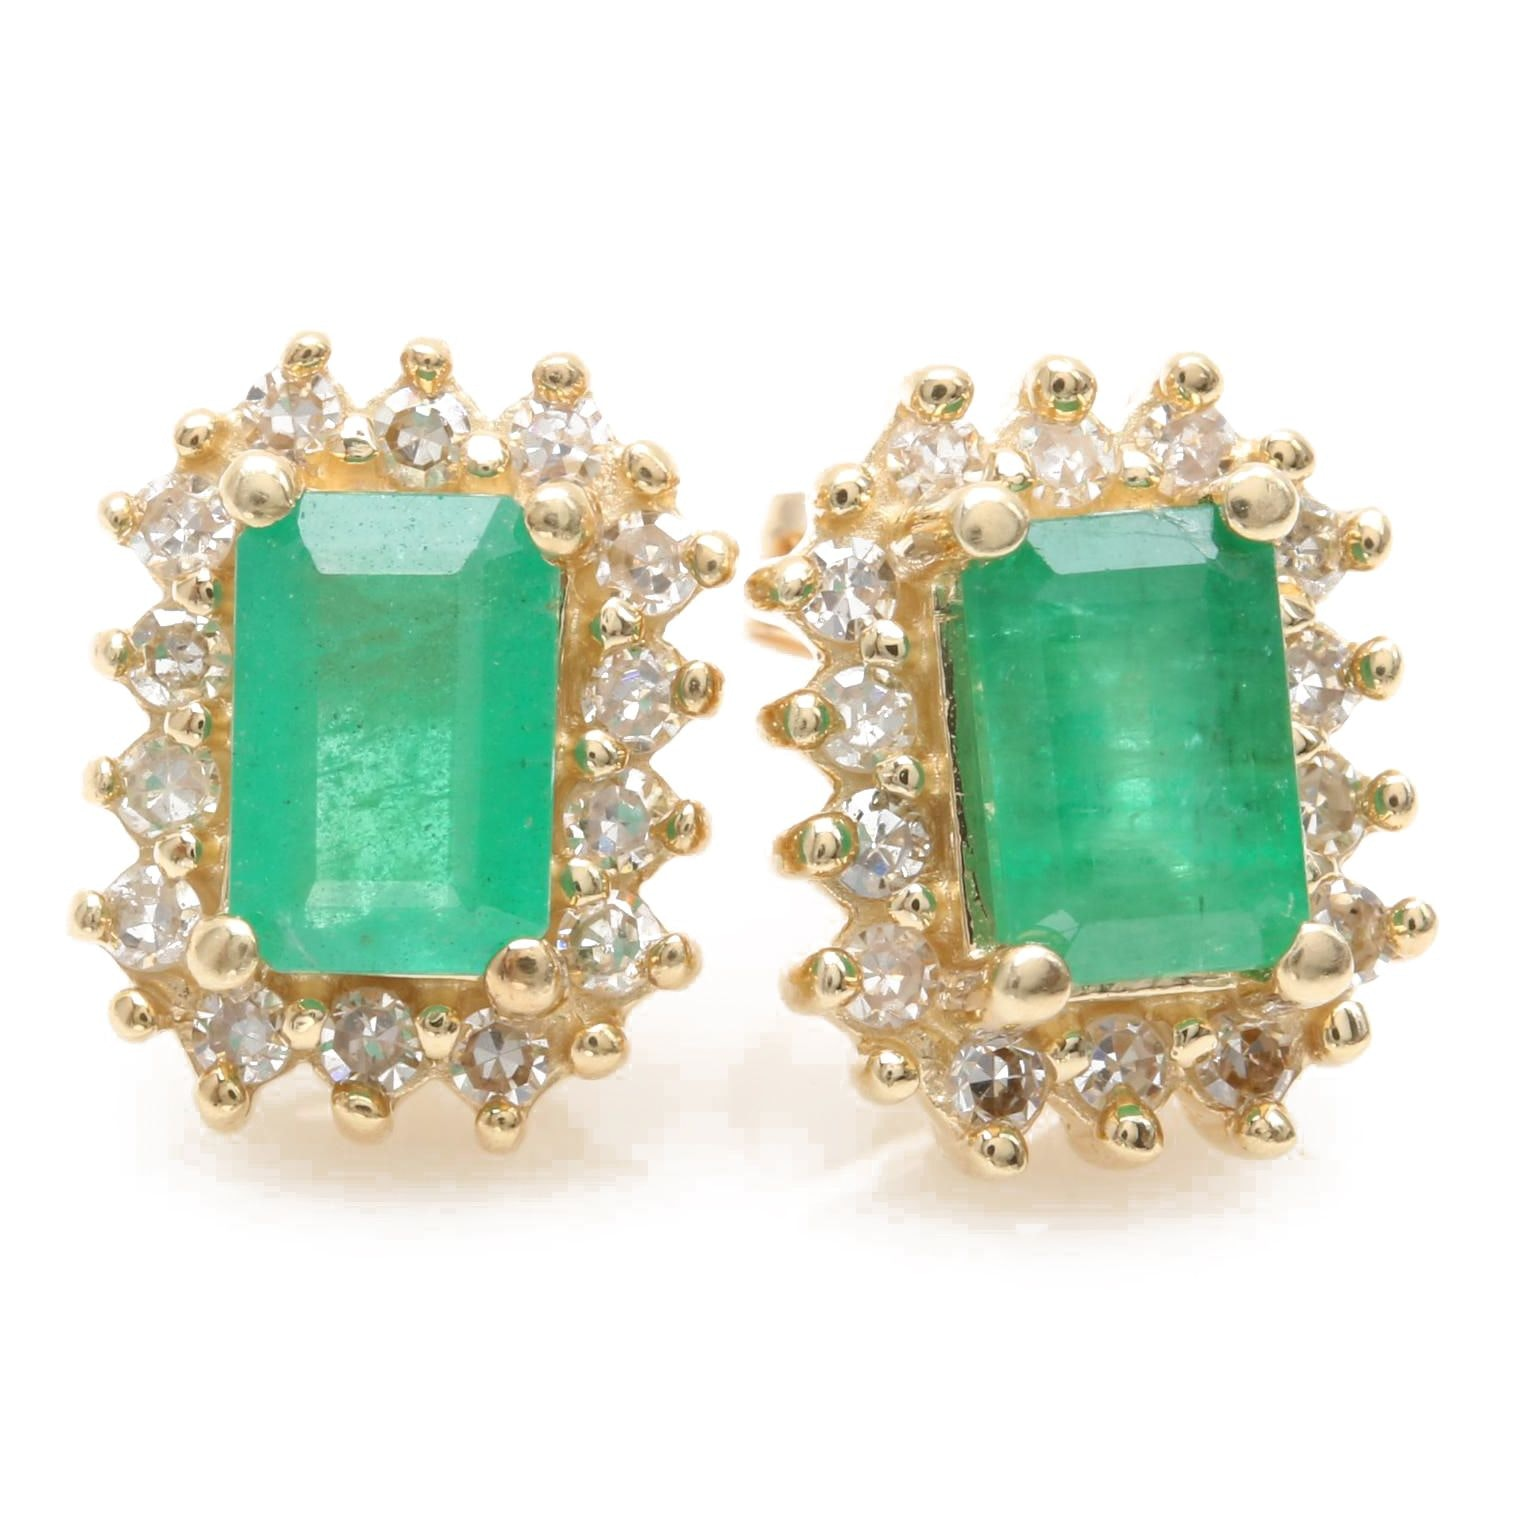 Alwand Vahan 14K Yellow Gold Emerald and Diamond Earrings